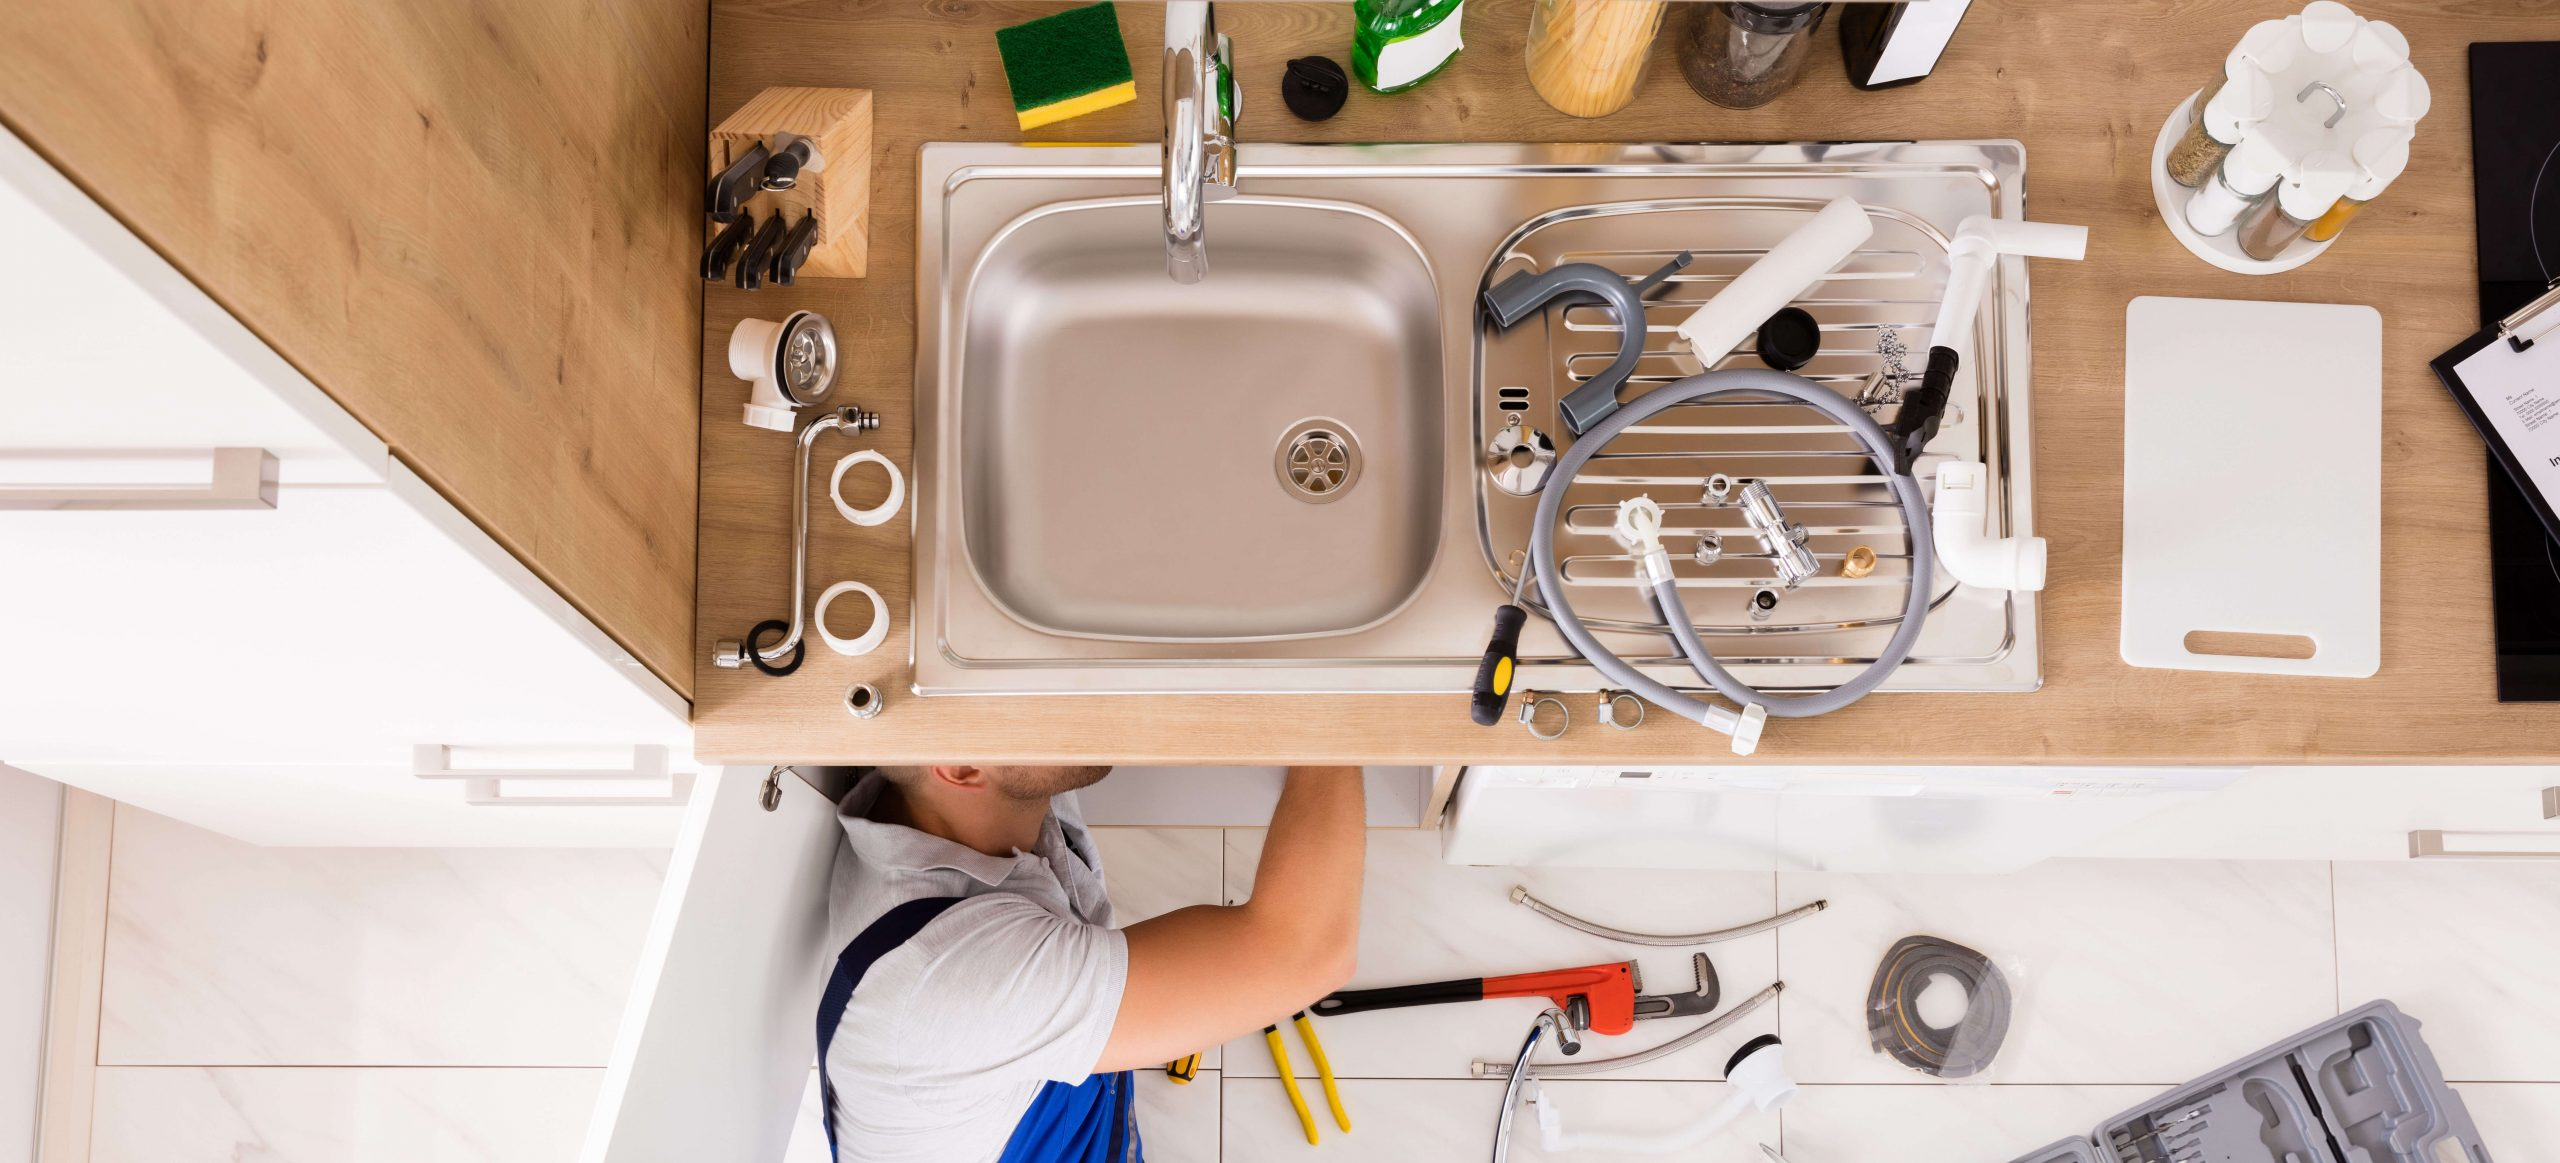 How To Replace A Kitchen Sink Definitive Guide My Plumber